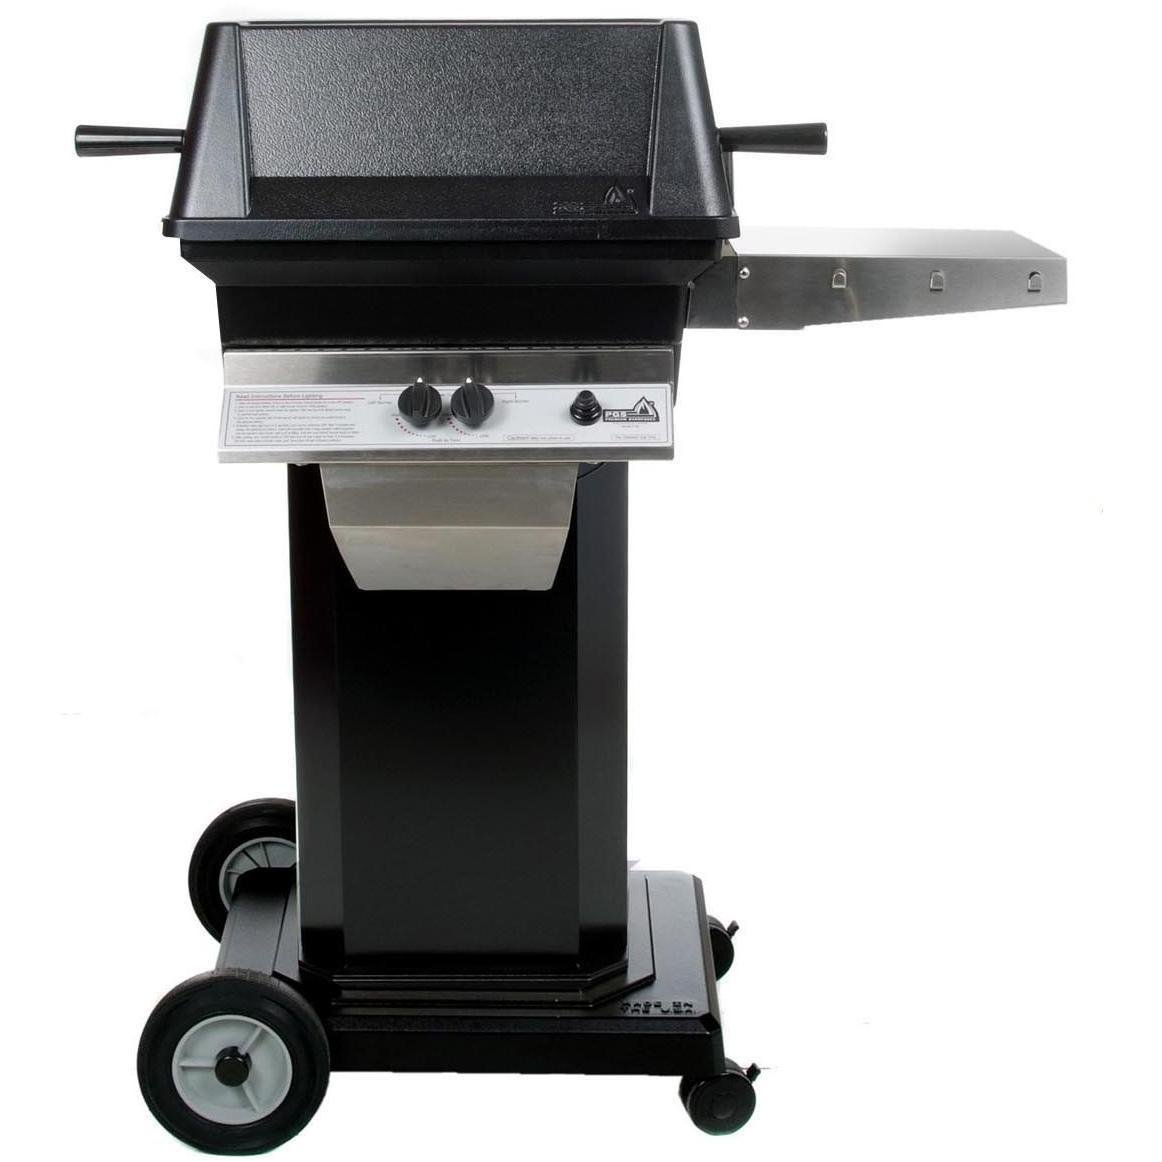 Pgs A30 Cast Aluminum Propane Gas Grill On Black Portable Pedestal Base